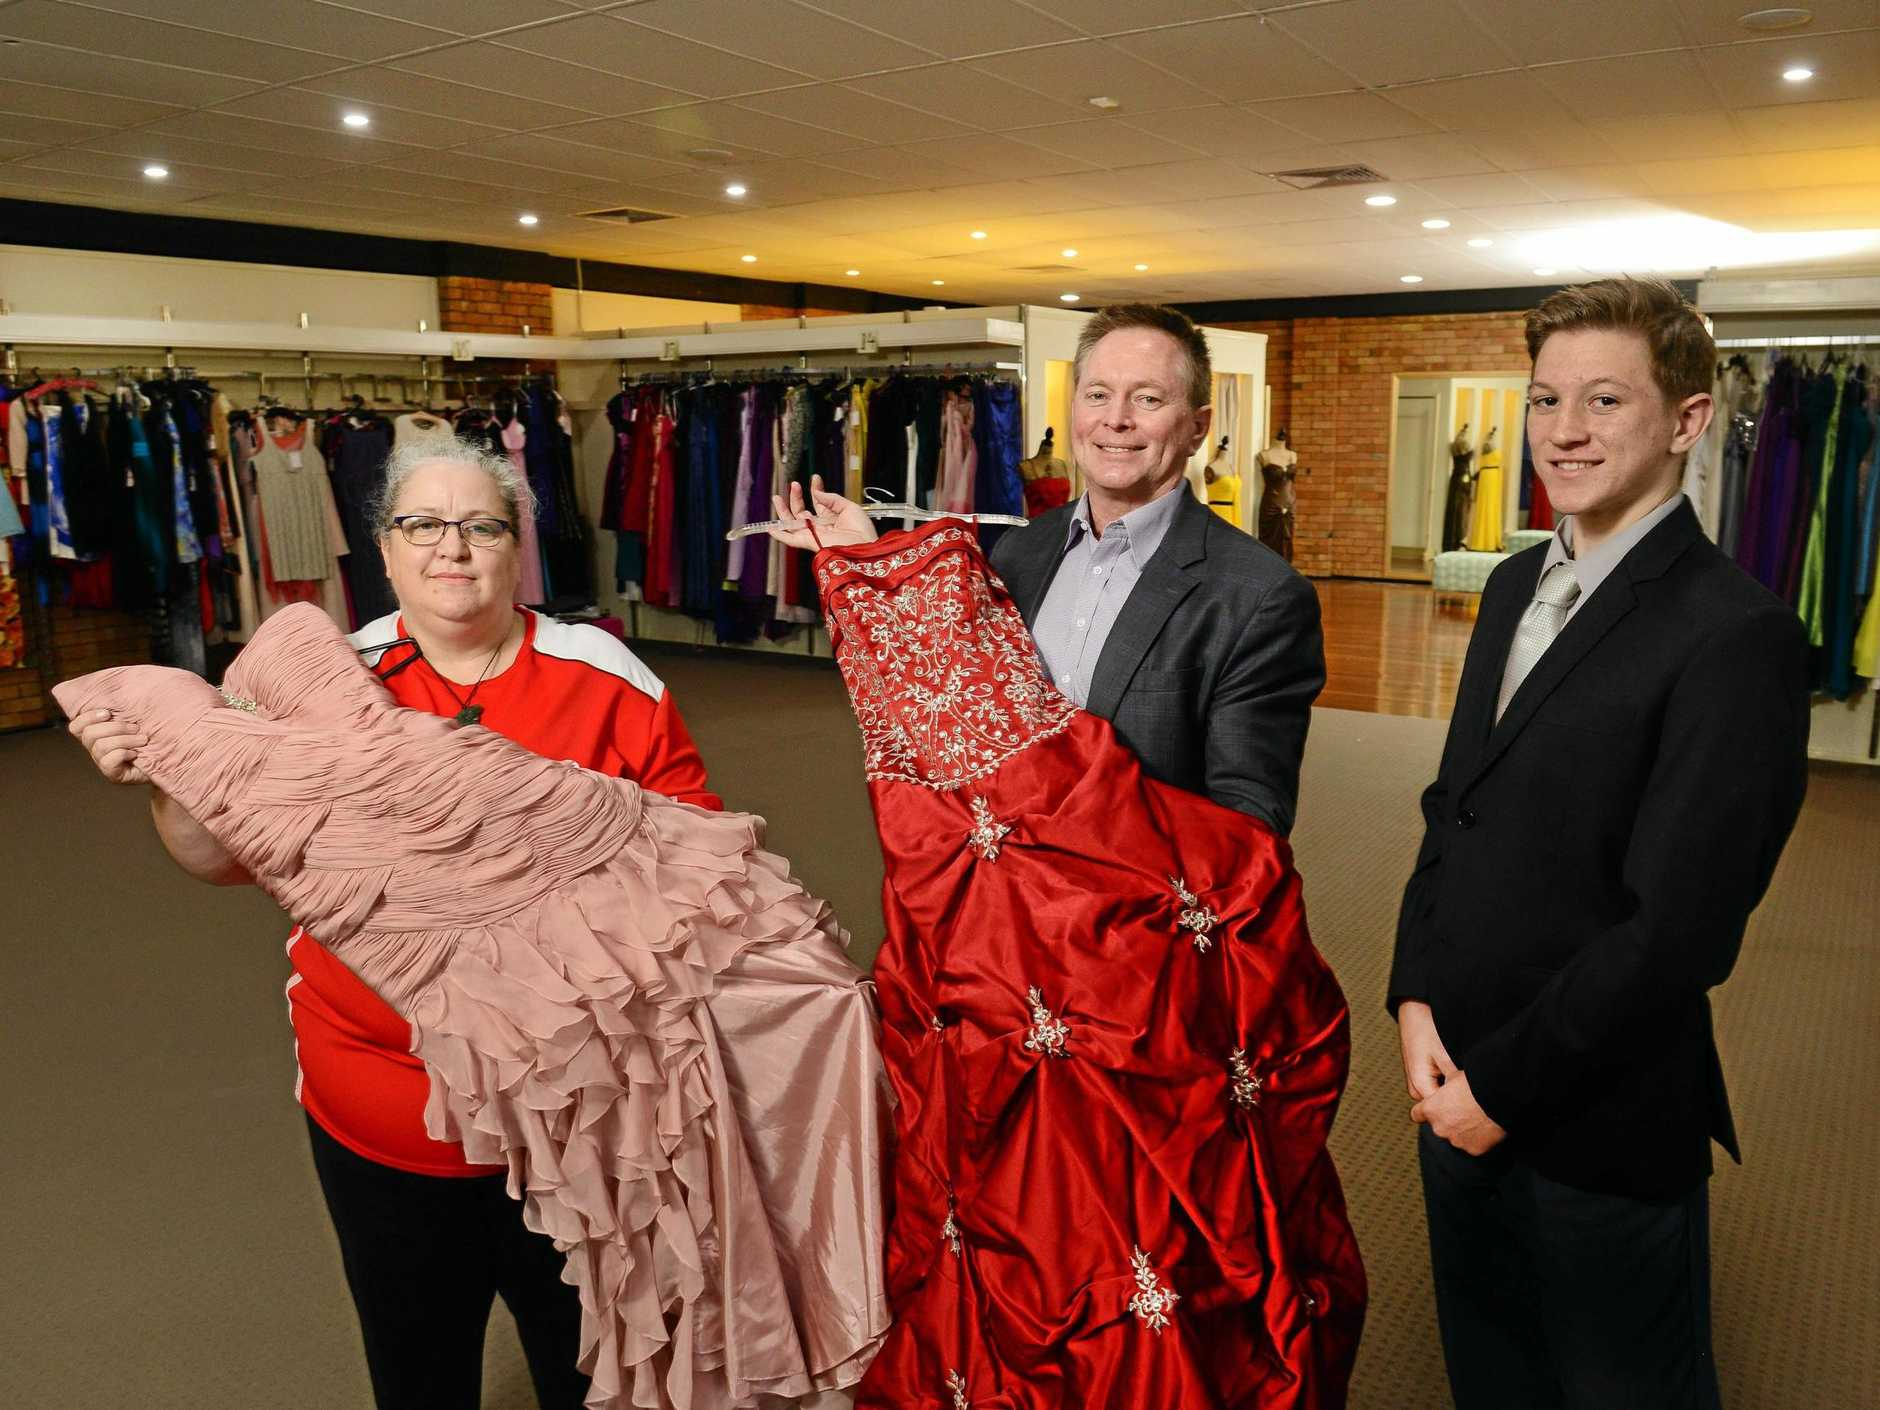 MAGIC WAND: Fairy God Mother Project founder Sam Harrison, Hearts and Minds Foundation director Grant Wallace and Konrad Wallace check out some of the donated formal wear.